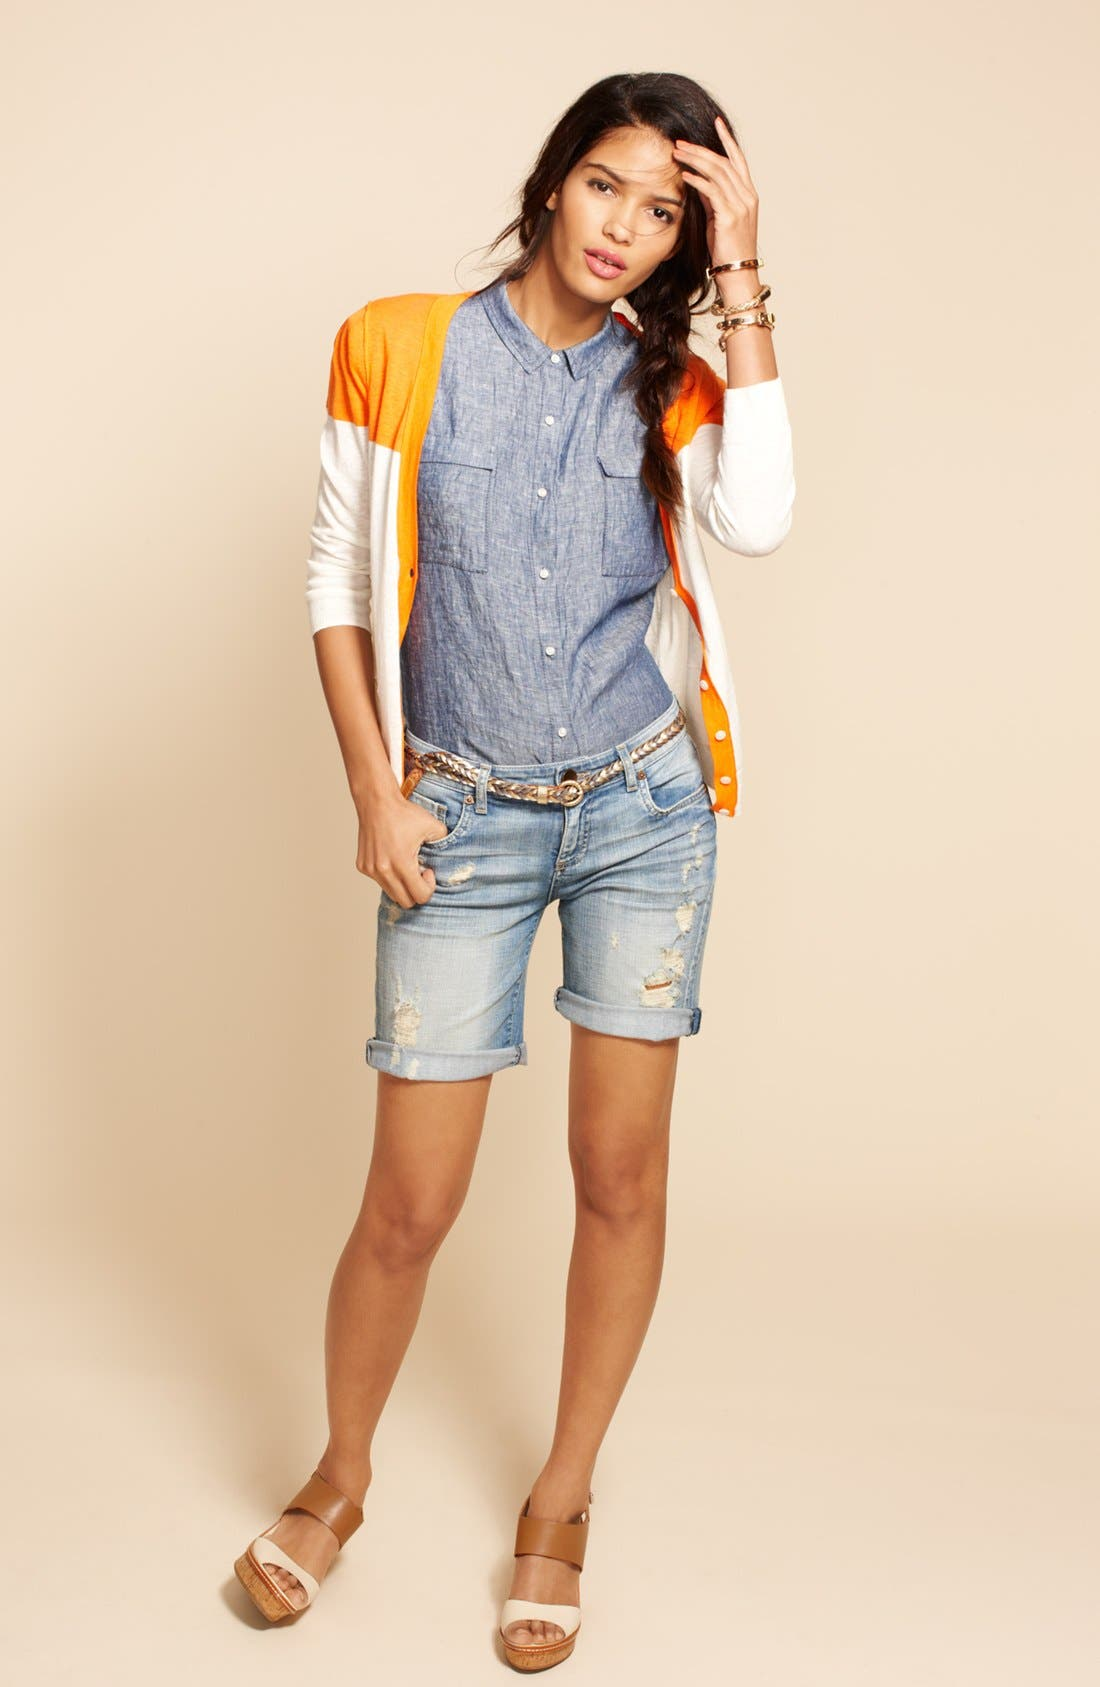 Alternate Image 1 Selected - Caslon® Cardigan, Top & KUT from the Kloth Shorts